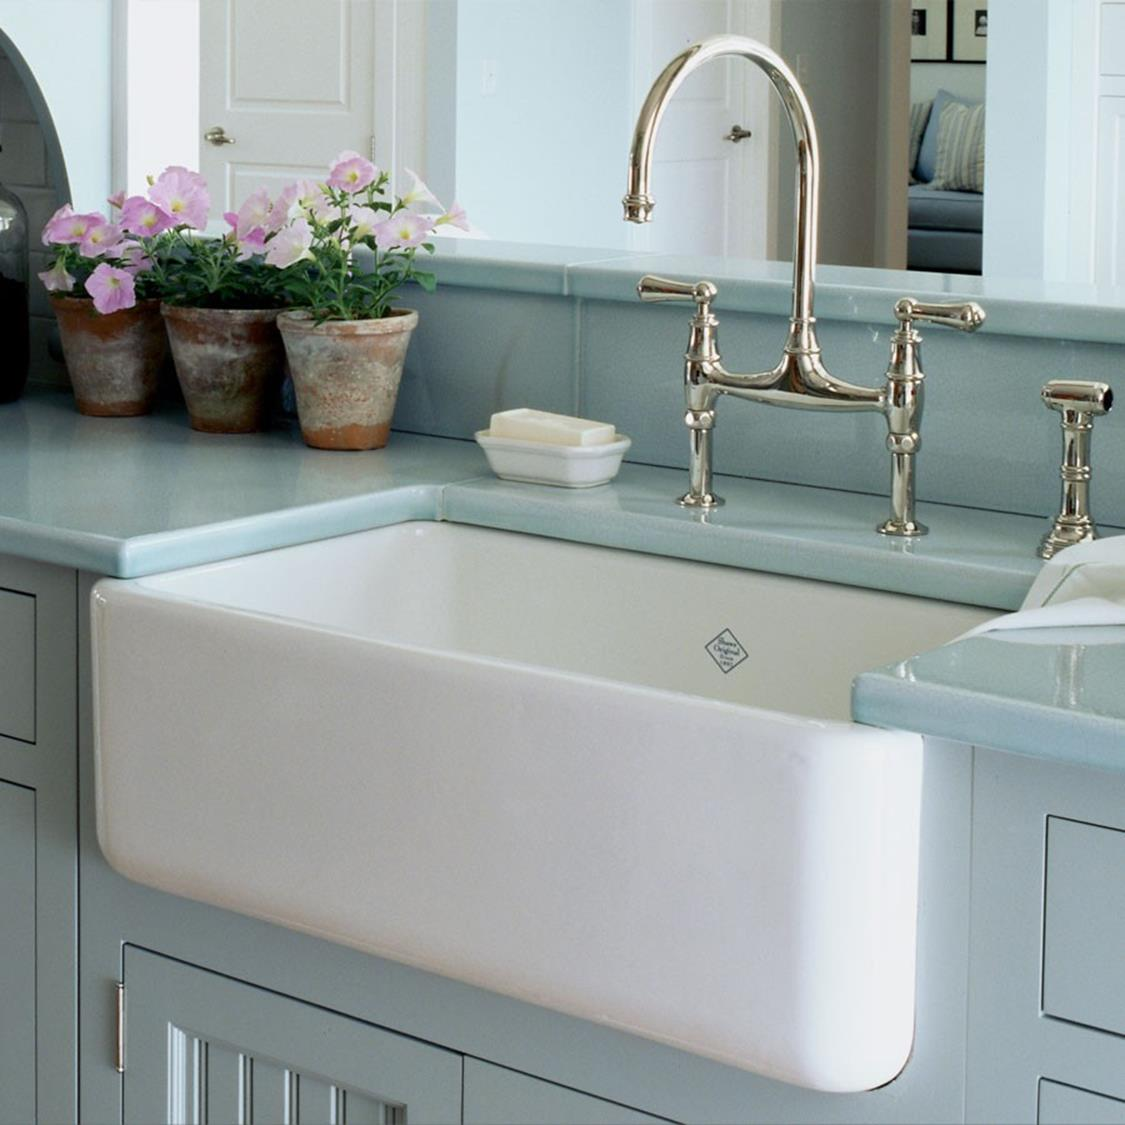 Farmhouse Style Bathroom Sink Ideas 31